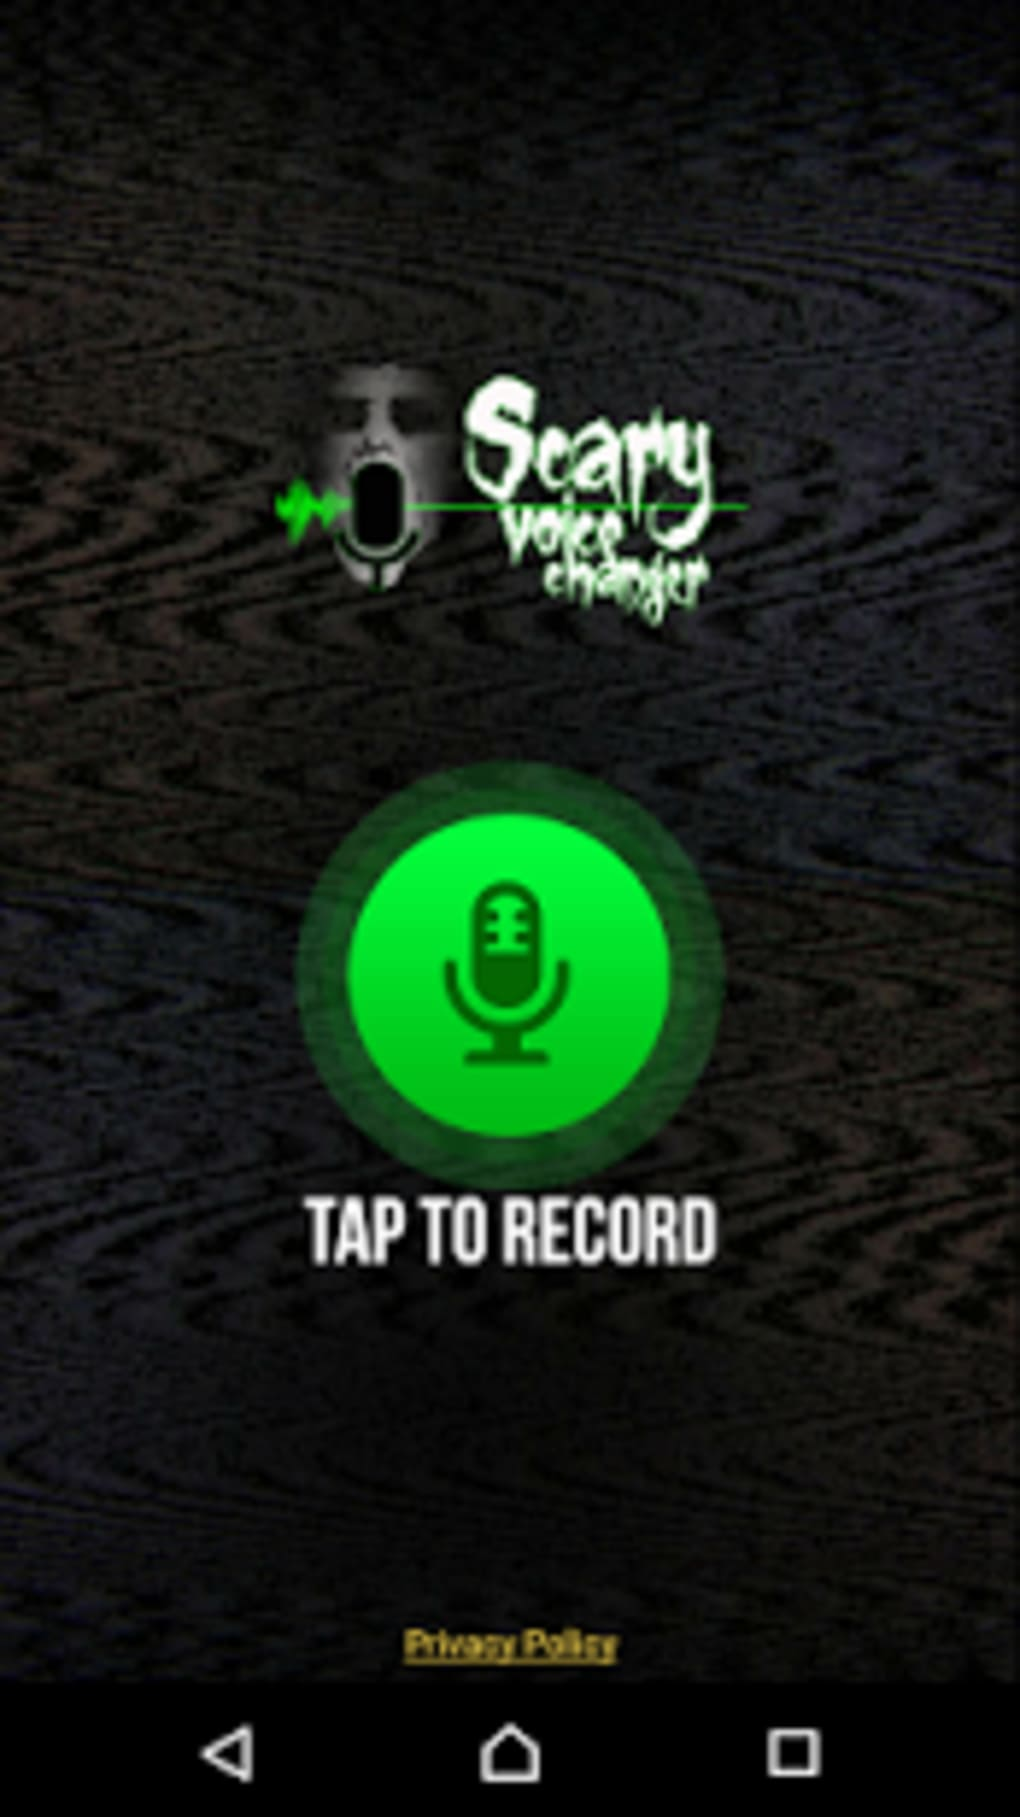 Scary Voice Changer Horror Sounds Voice Recorder for Android - Download